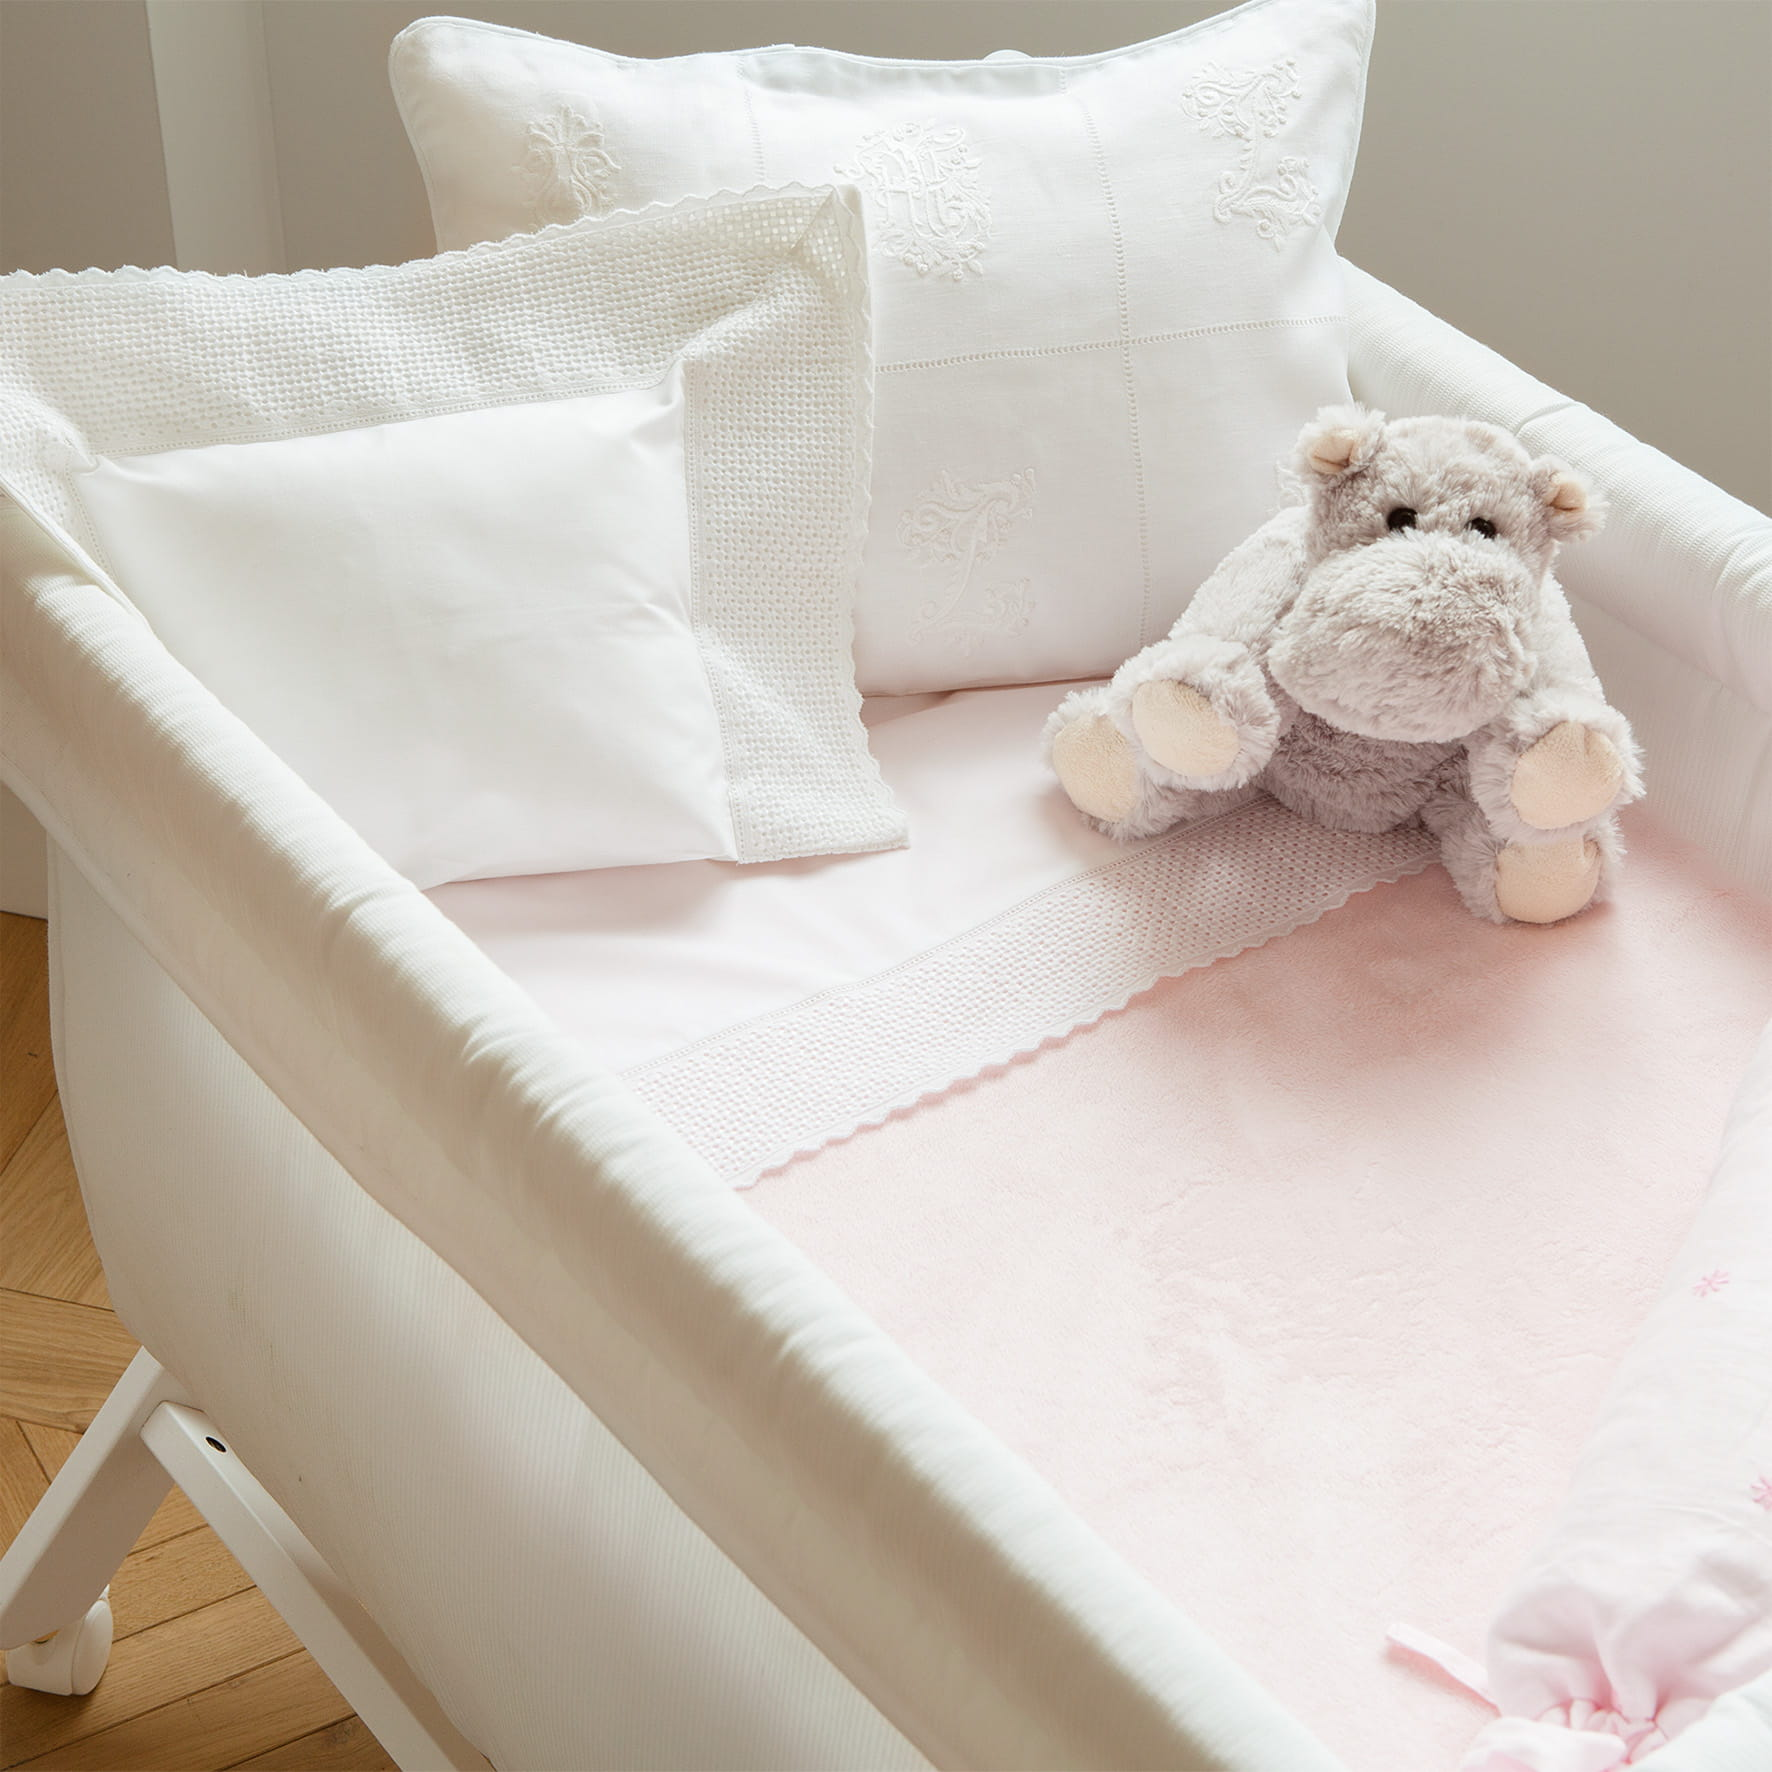 Mini berceau de zara home - Tour de lit bebe zara home ...